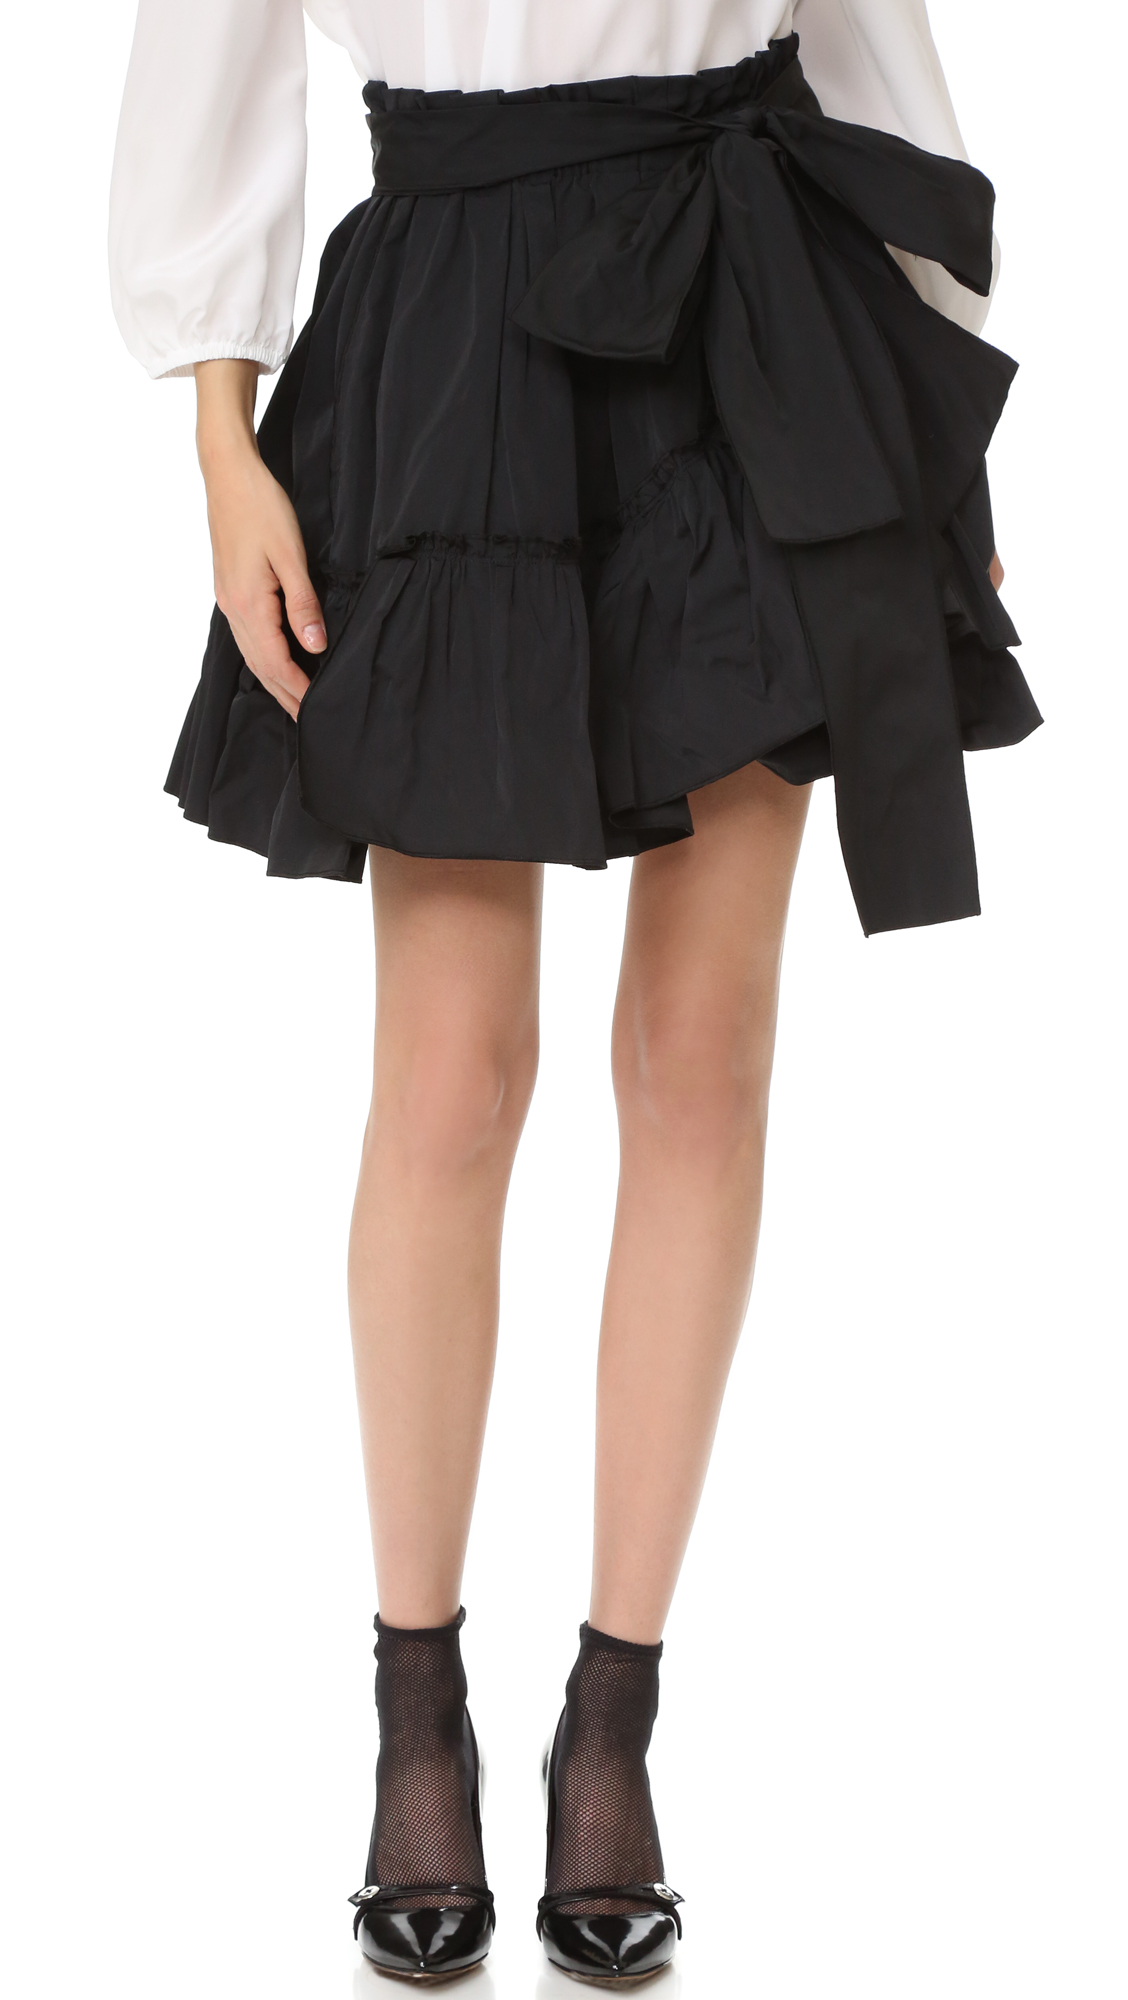 marc jacobs female marc jacobs tie waist ruffle skirt black